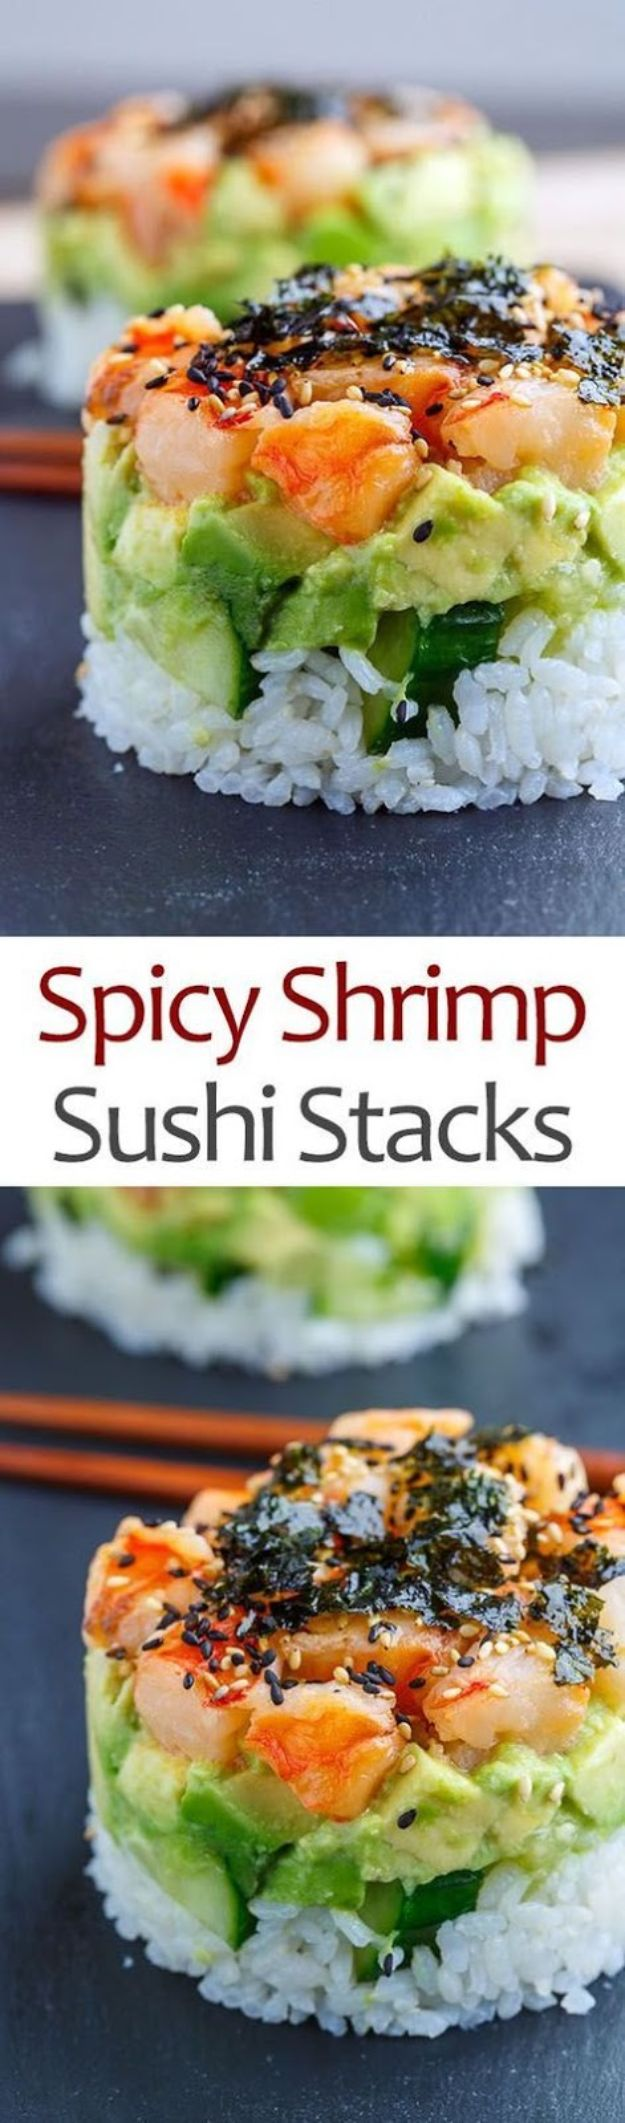 Healthy Shrimp Recipes - Spicy Shrimp Sushi Stacks - Healthy, Easy Recipe Ideas for Dinner Using Shrimp - Grilled, Creamy Baked Pasta, Fried, Spicy Asian Style, Mexican, Sauteed Garlic